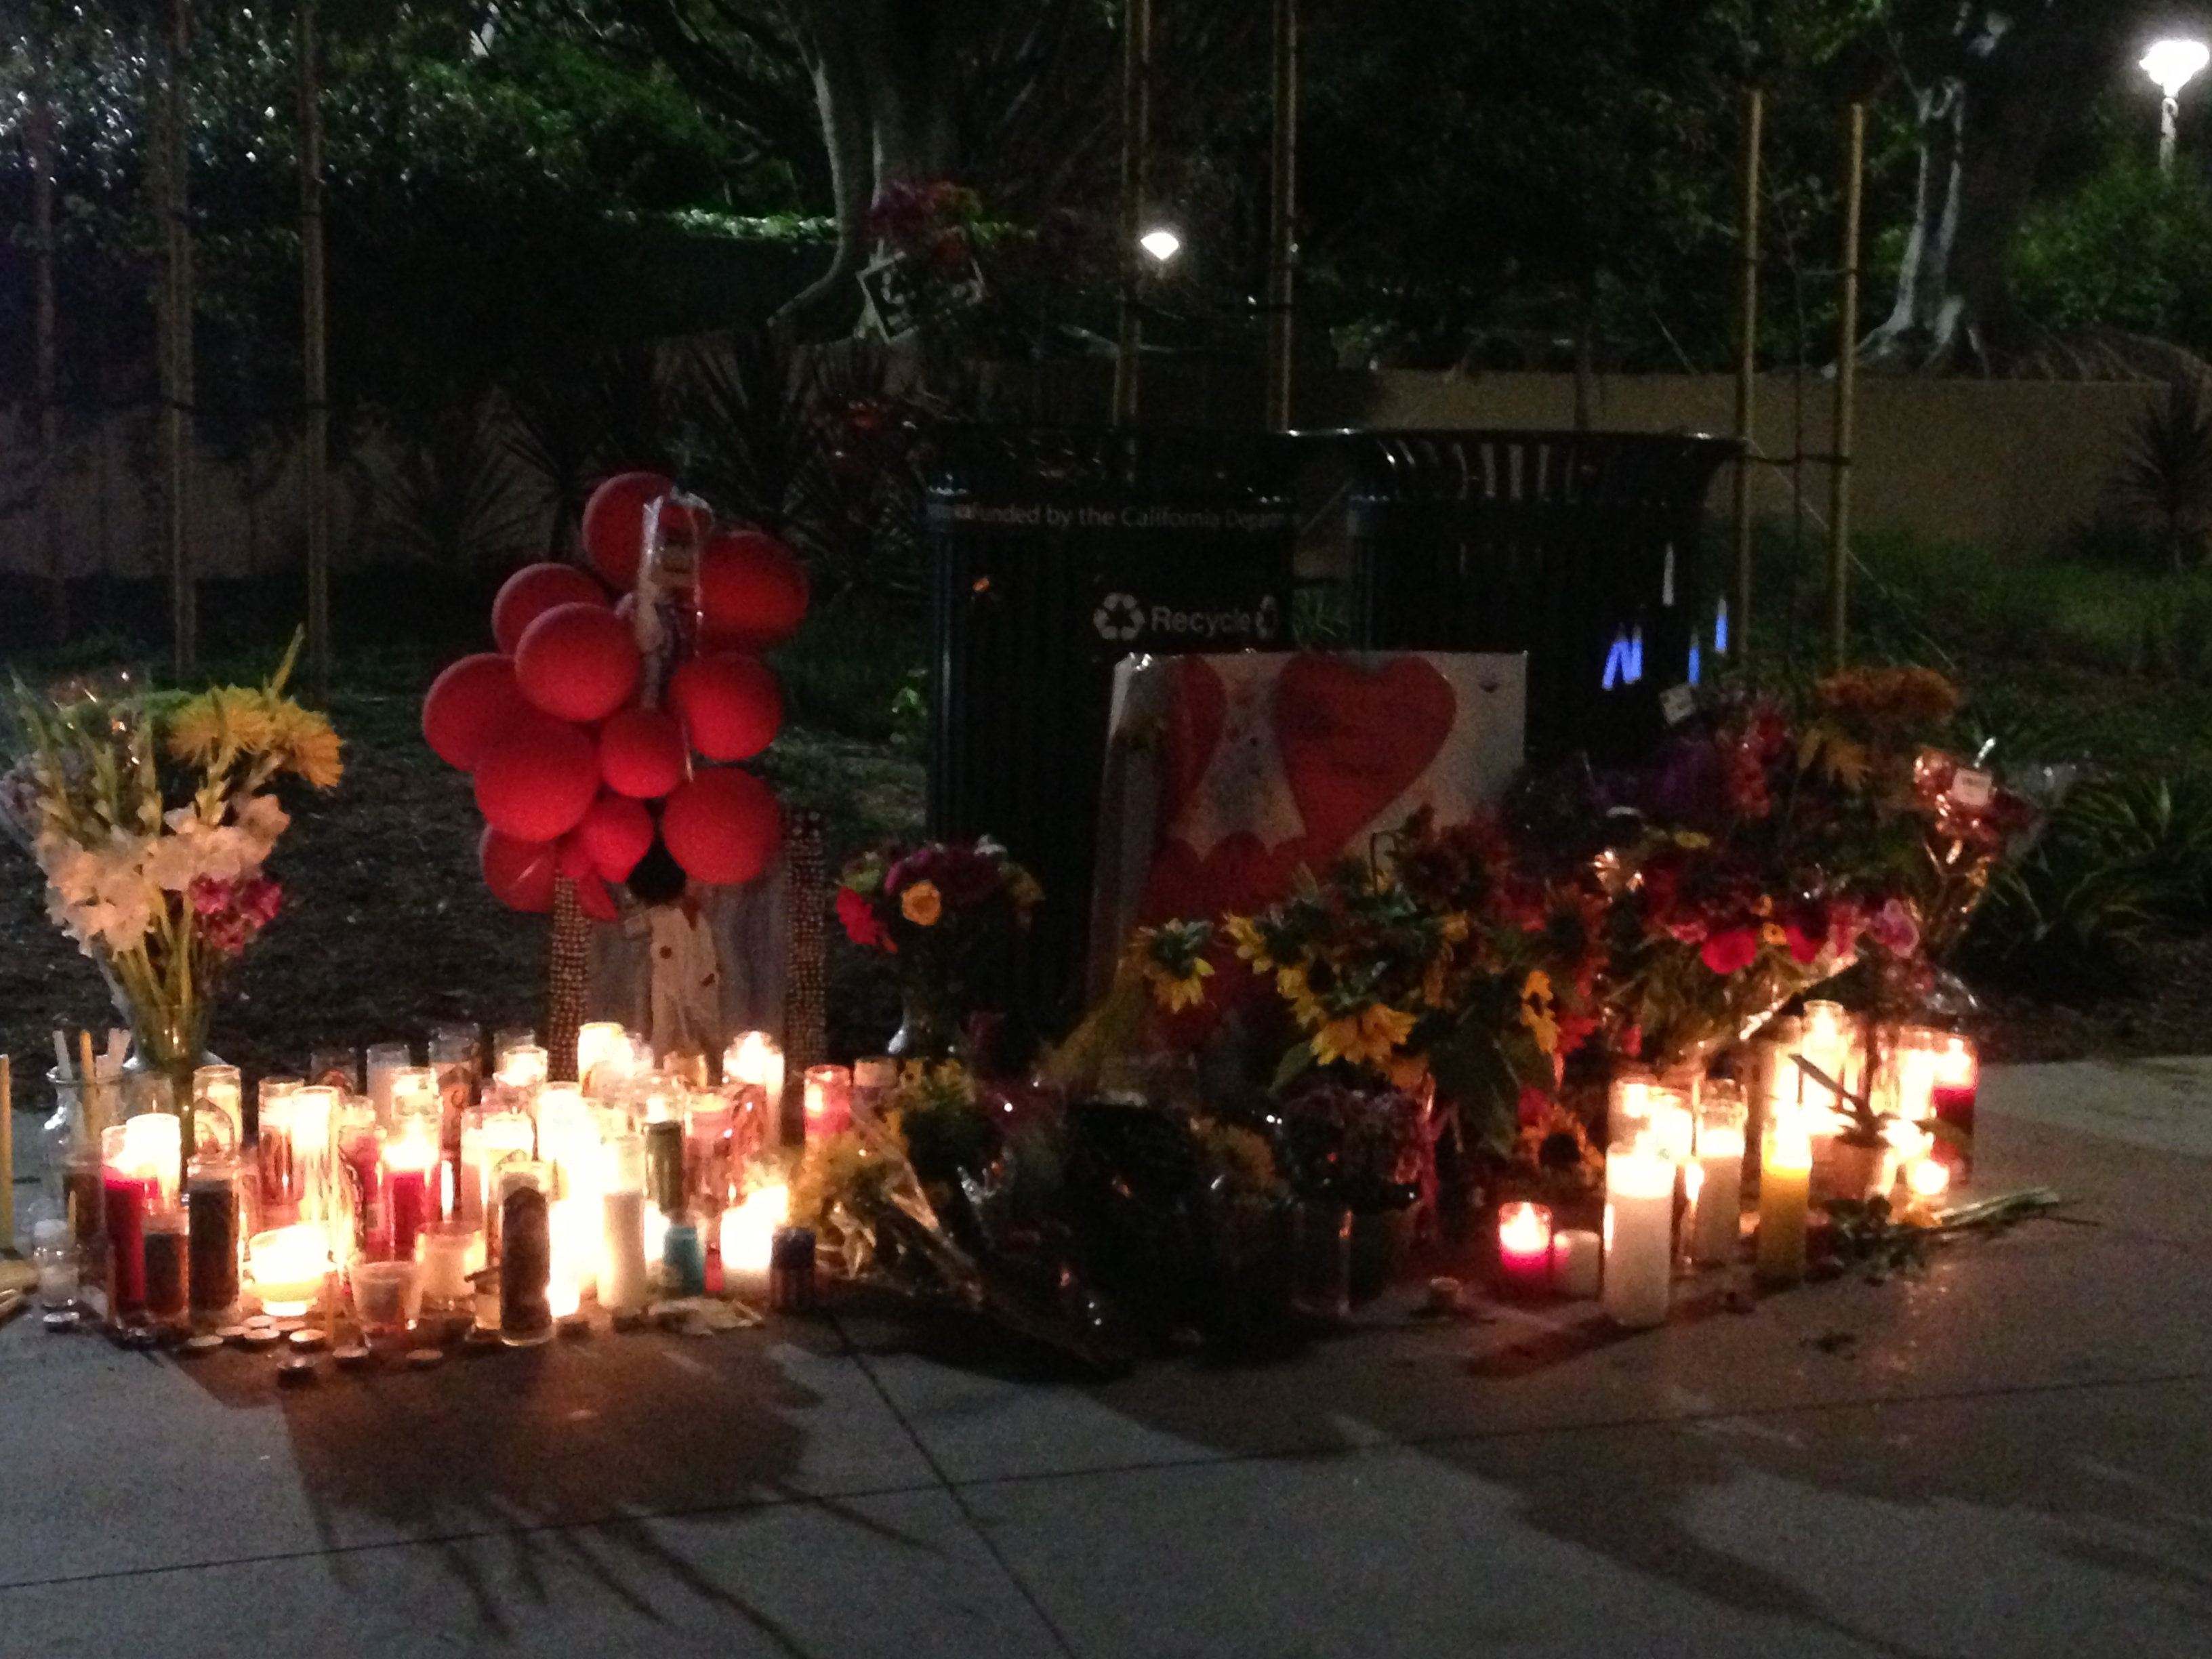 A memorial shrine at Santa Monica College, days after the June 7 shootings. Photo by Avishay Artsy.